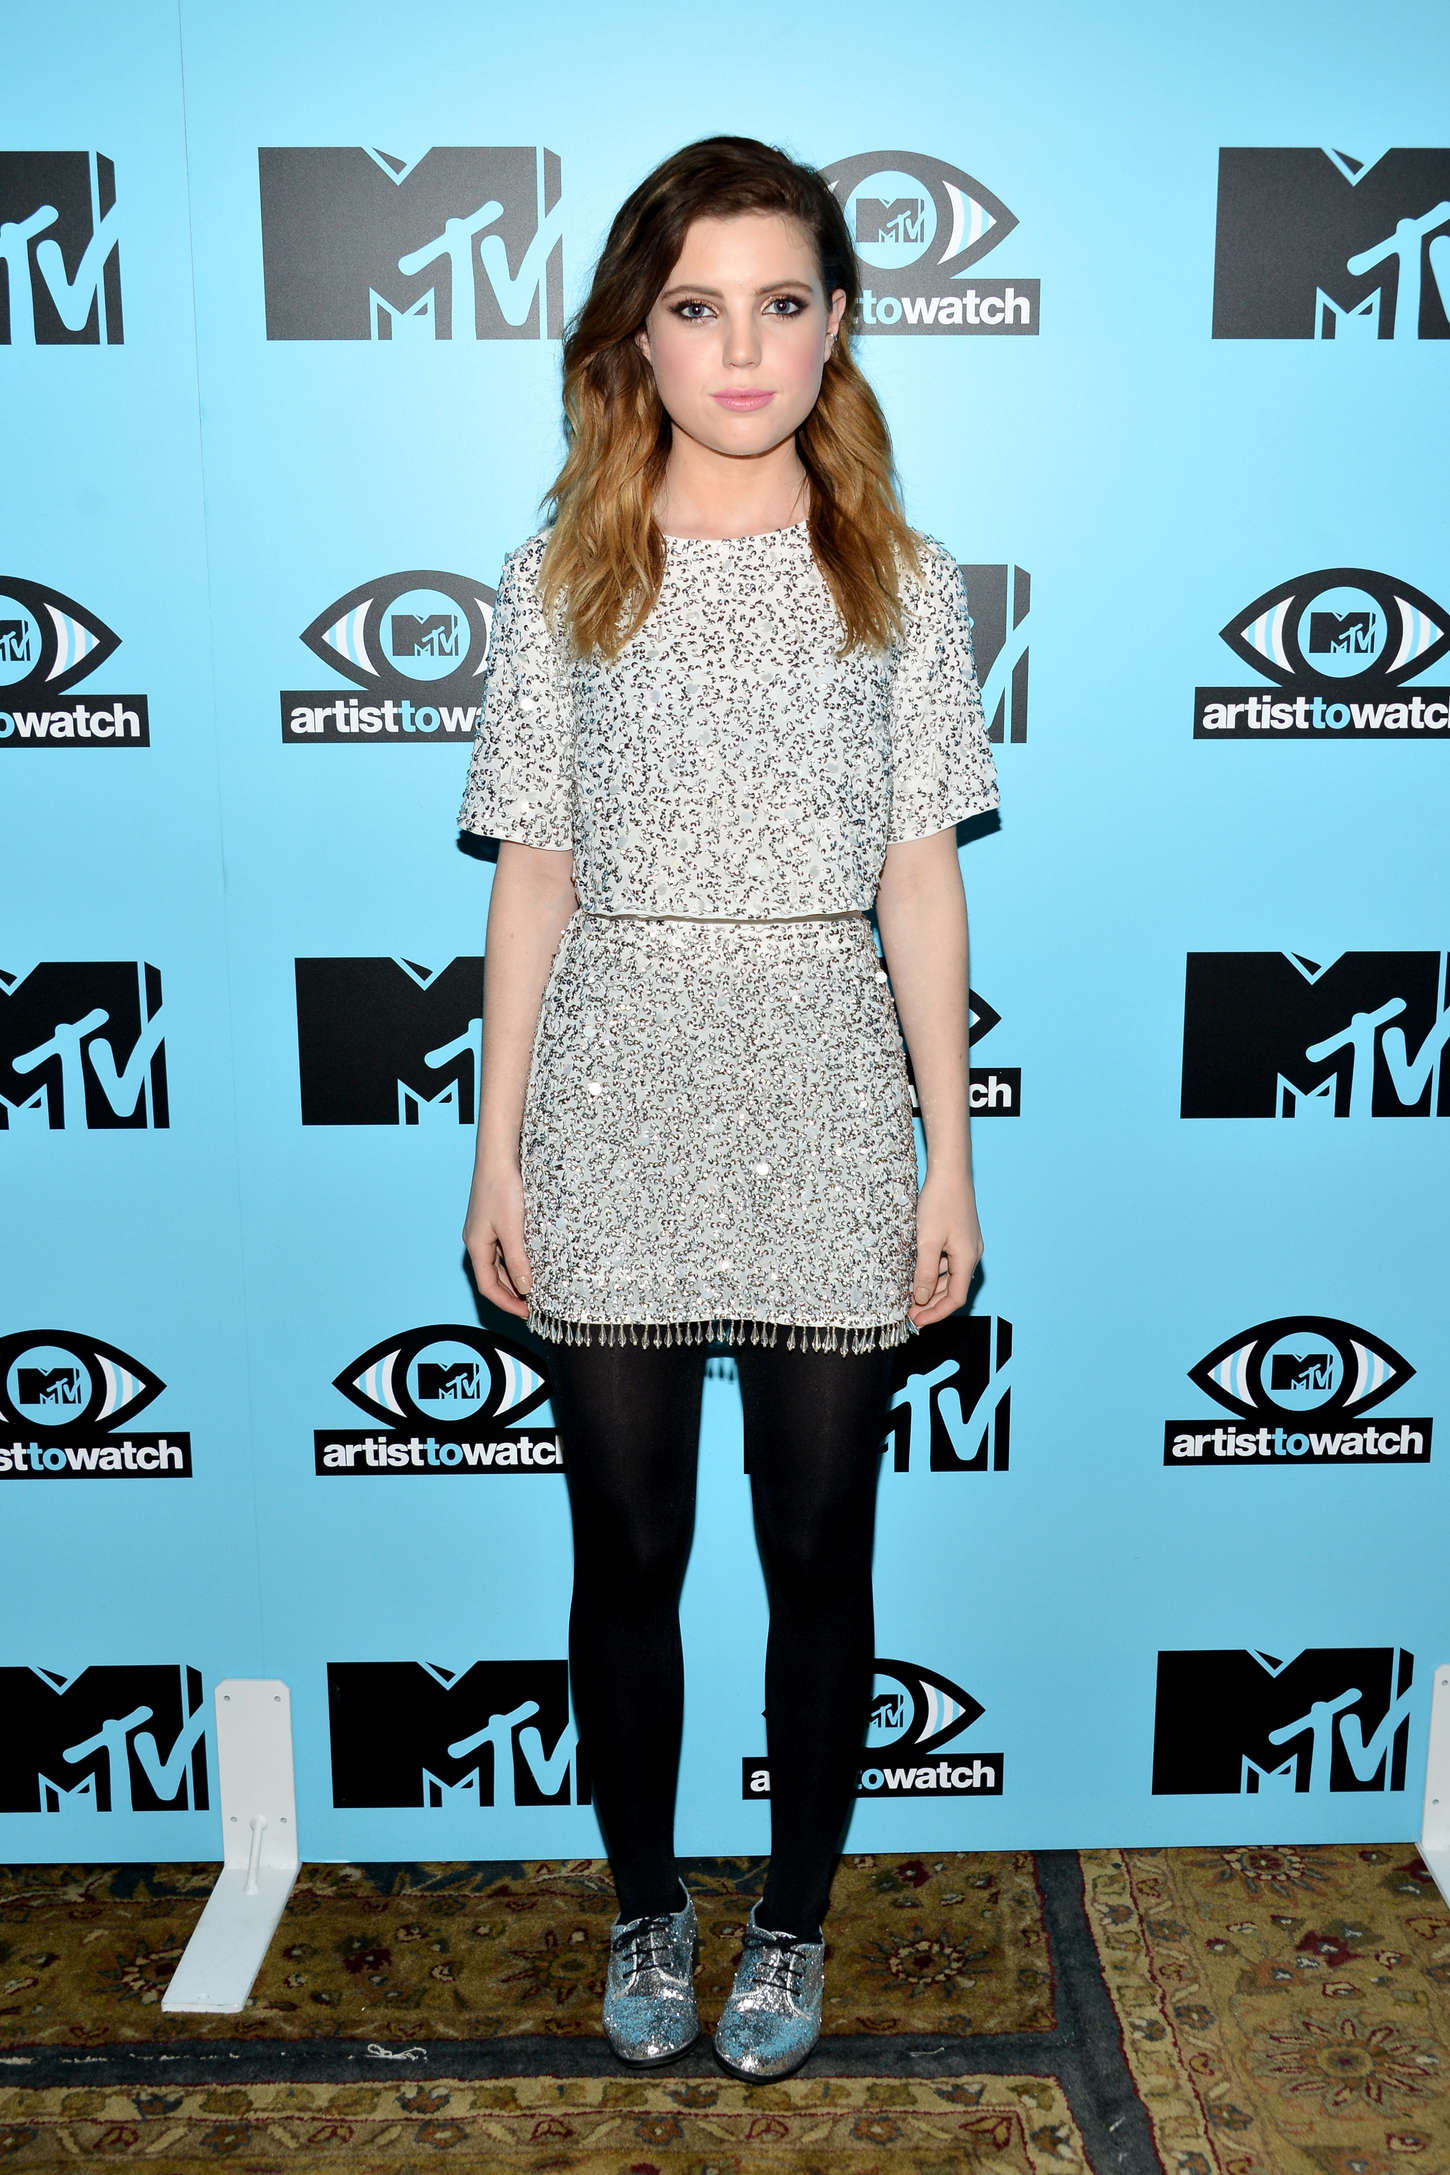 Sydney Sierota MTV Artists to Watch in West Hollywood